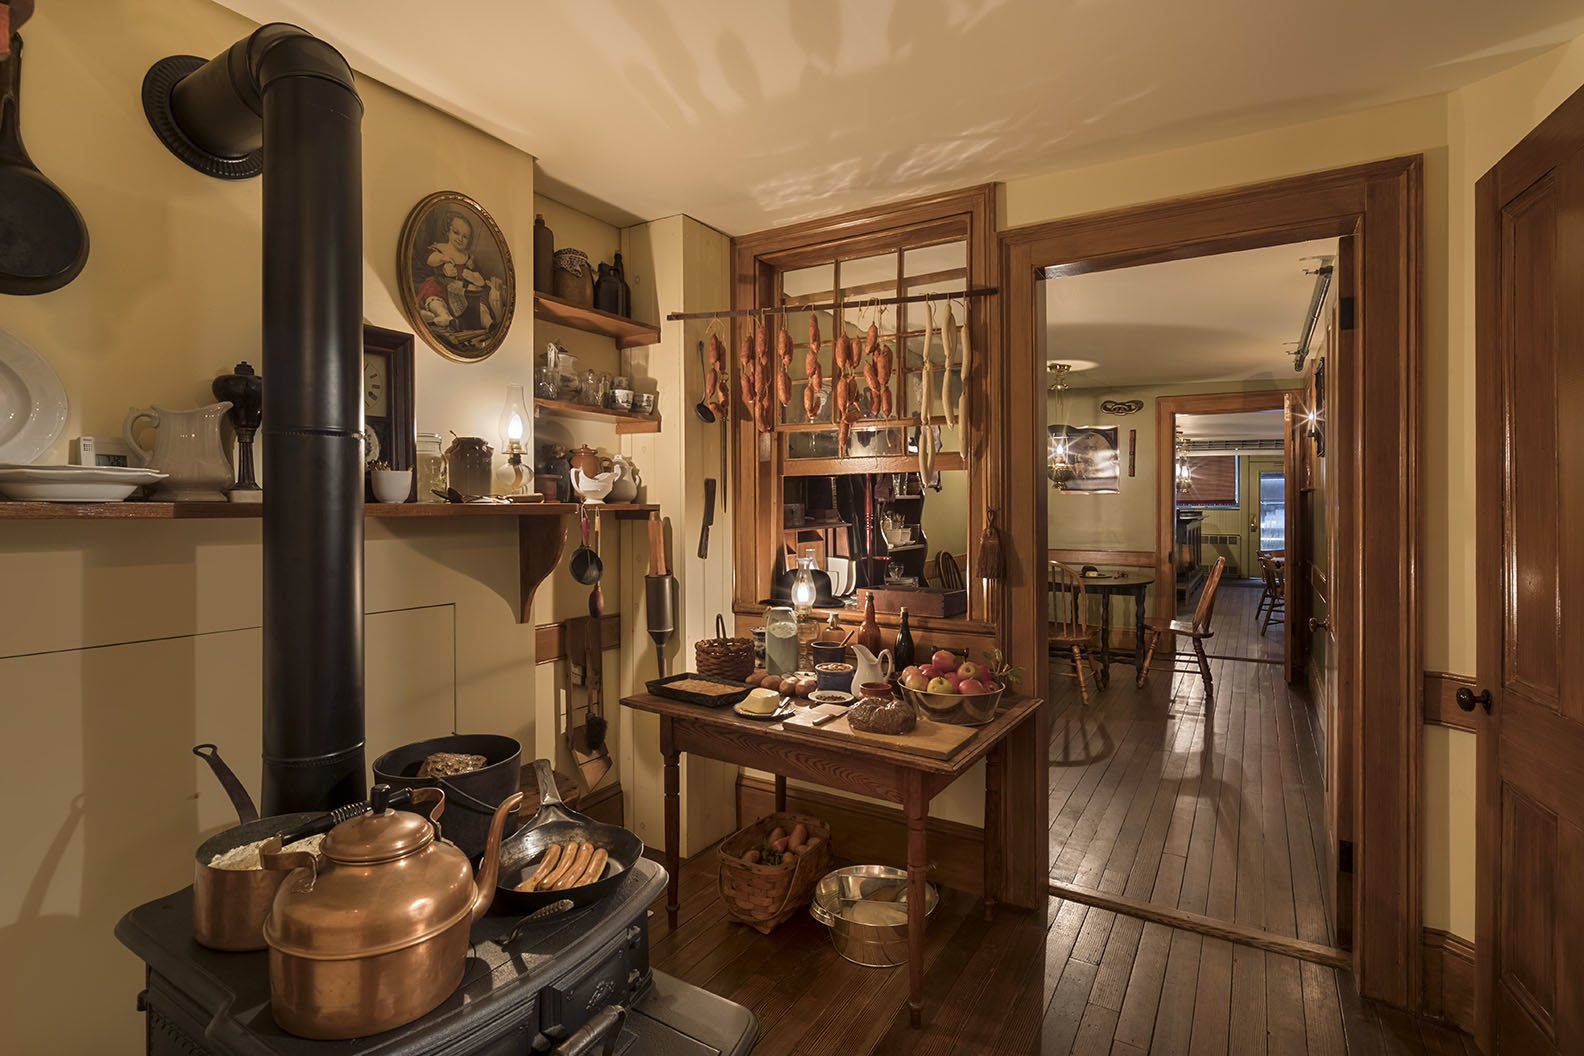 The recreated kitchen of the Schneider family